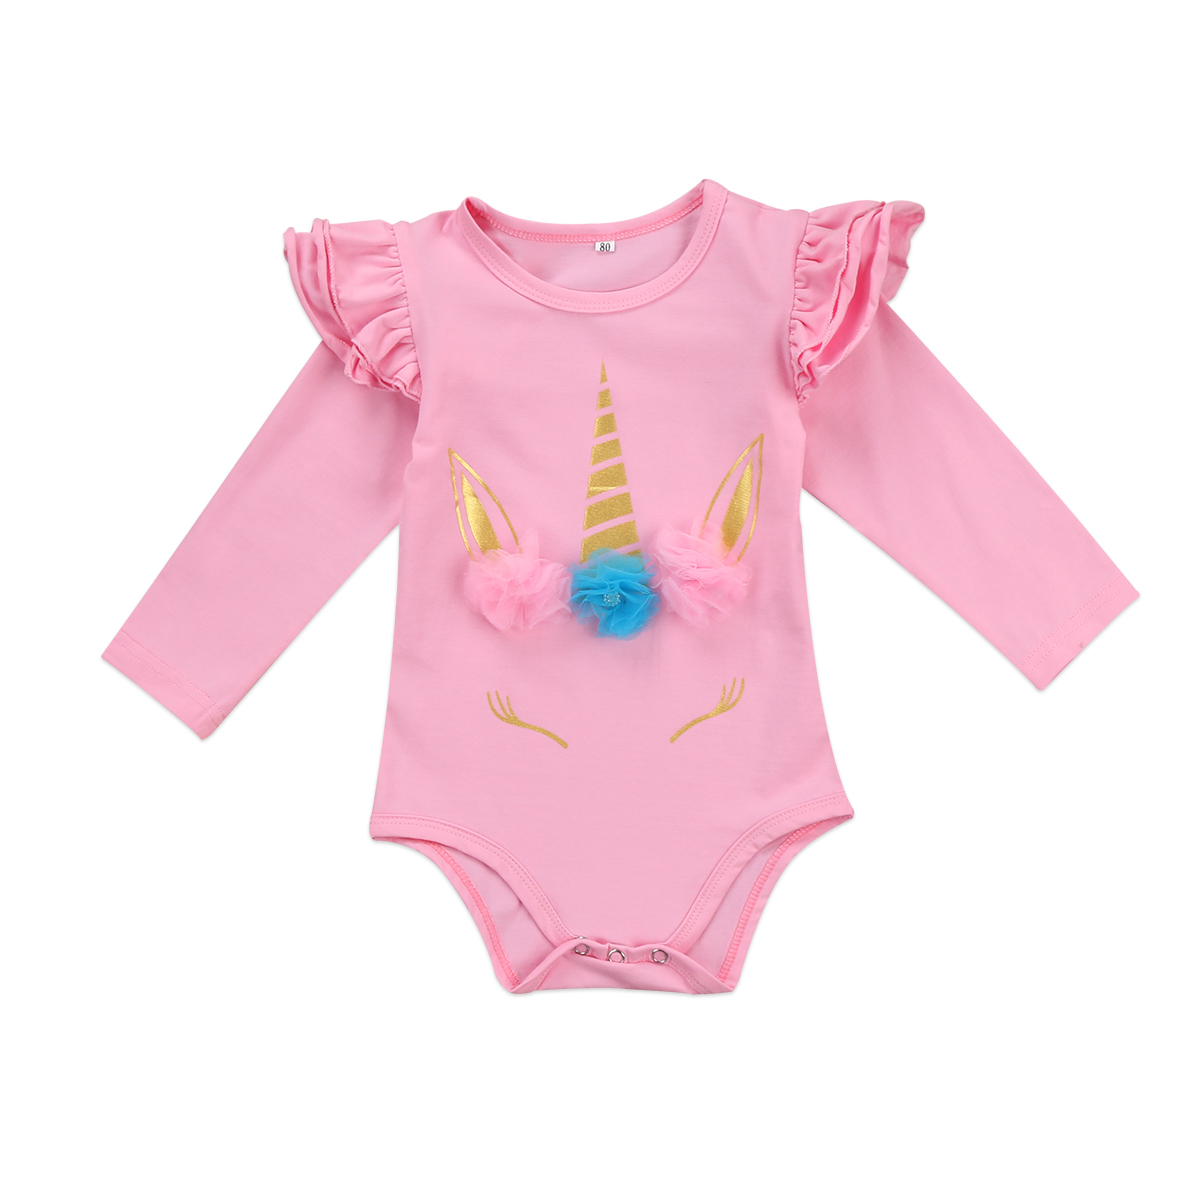 Newborn Infant Baby Girl Unicorn Bodysuit Outfits Summer Fall Clothes